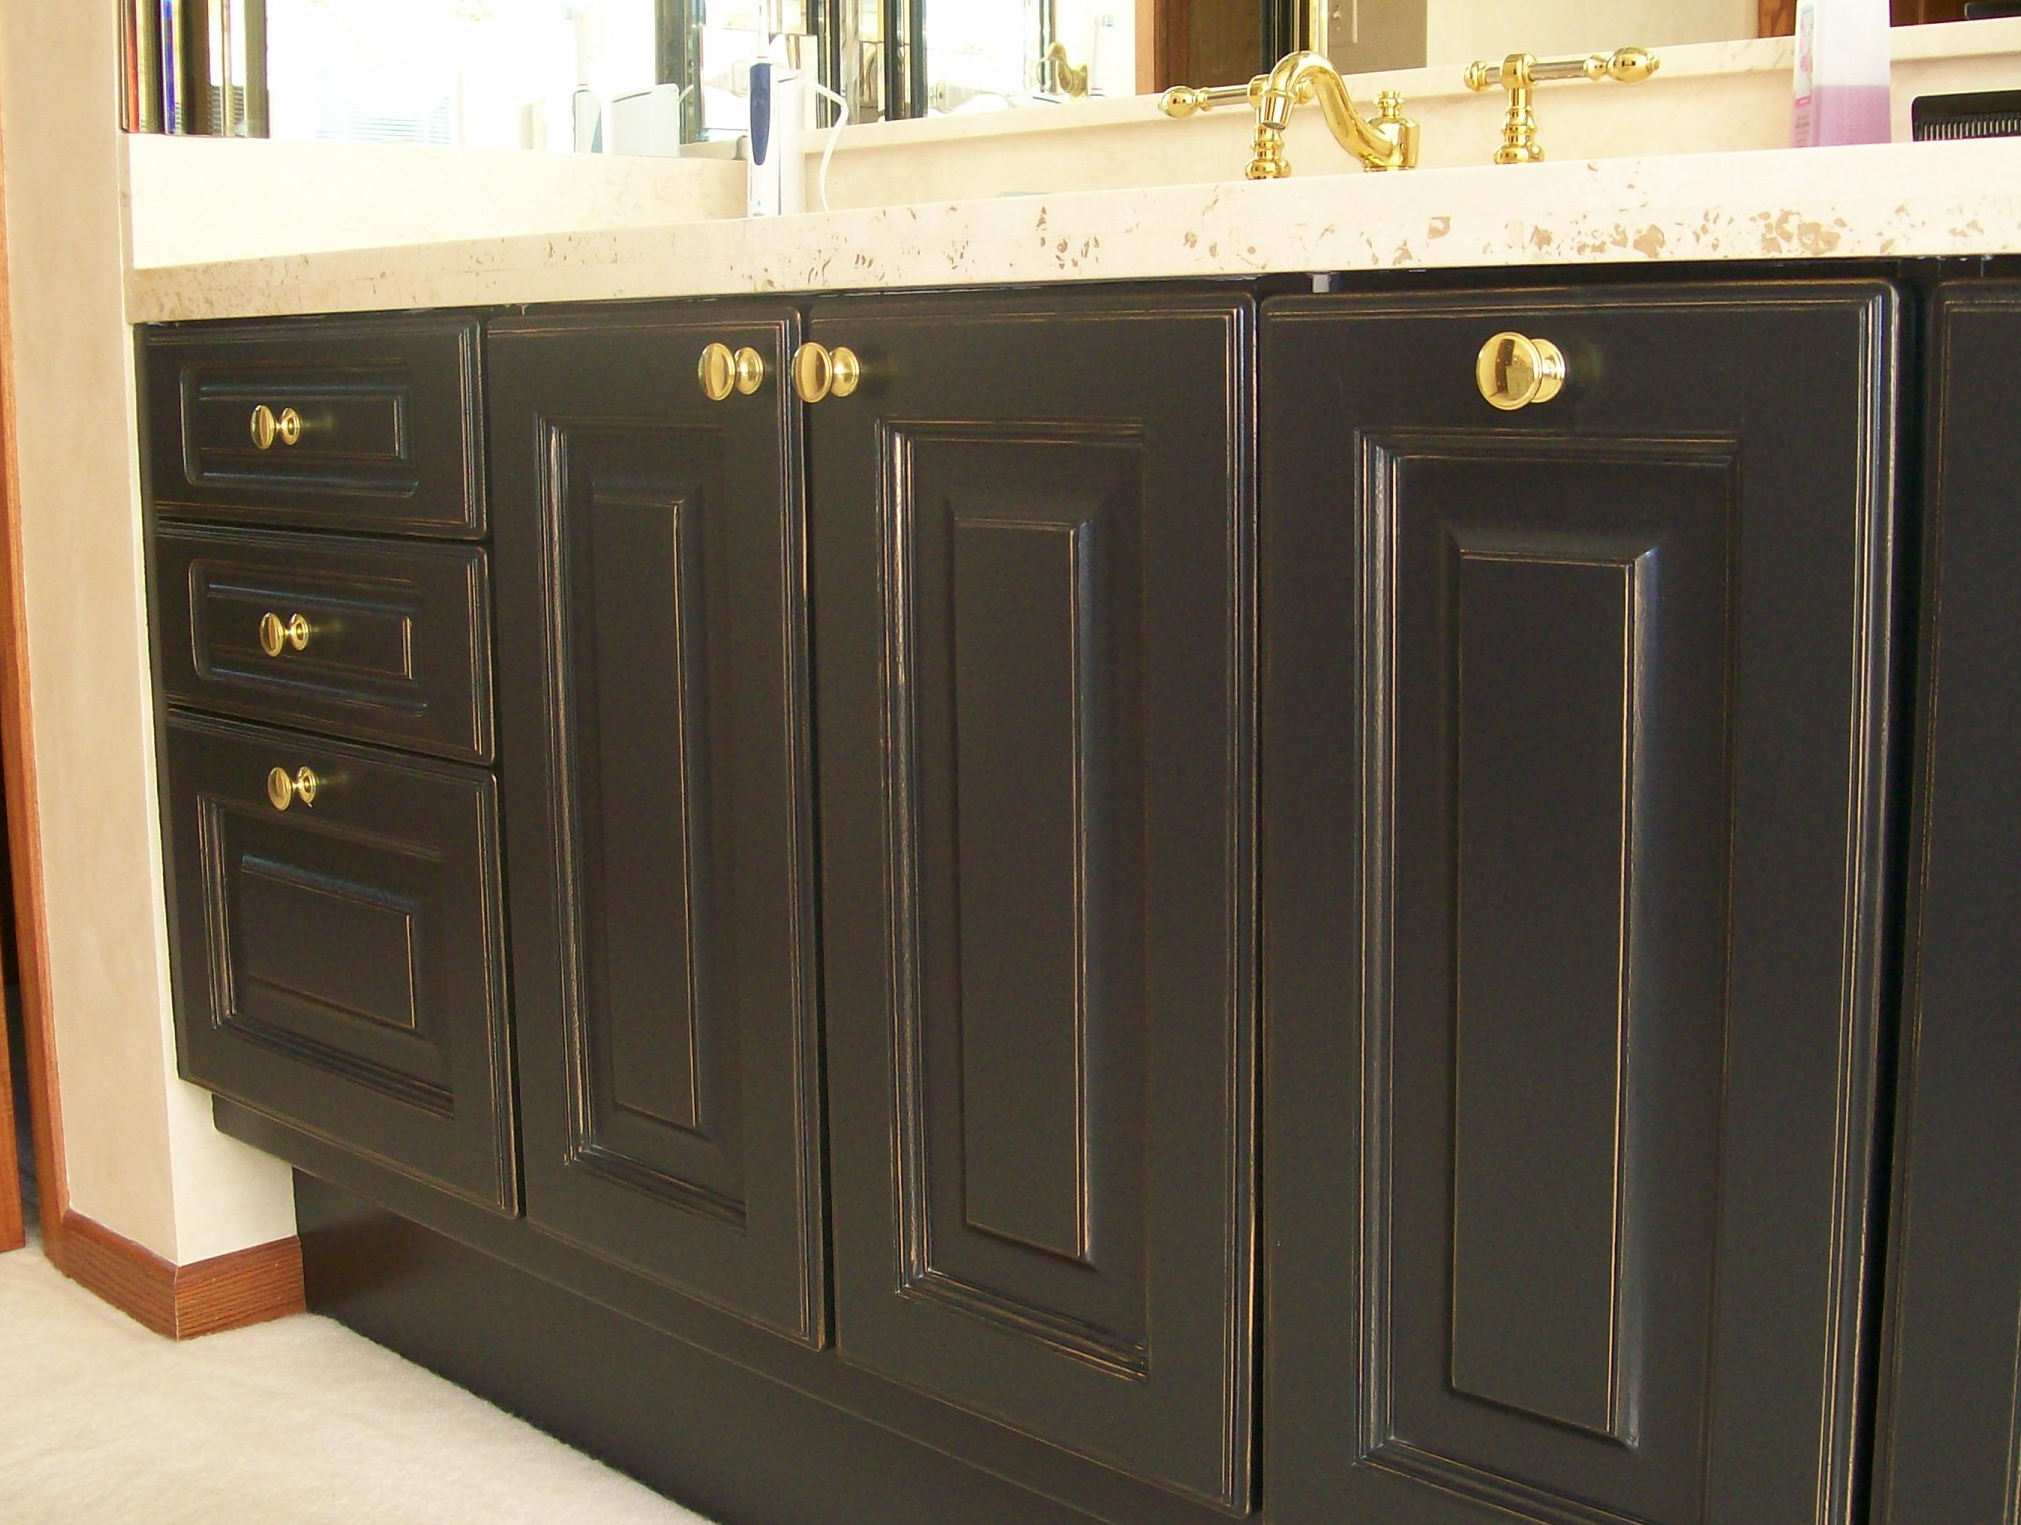 refinished cabinets with gold touches